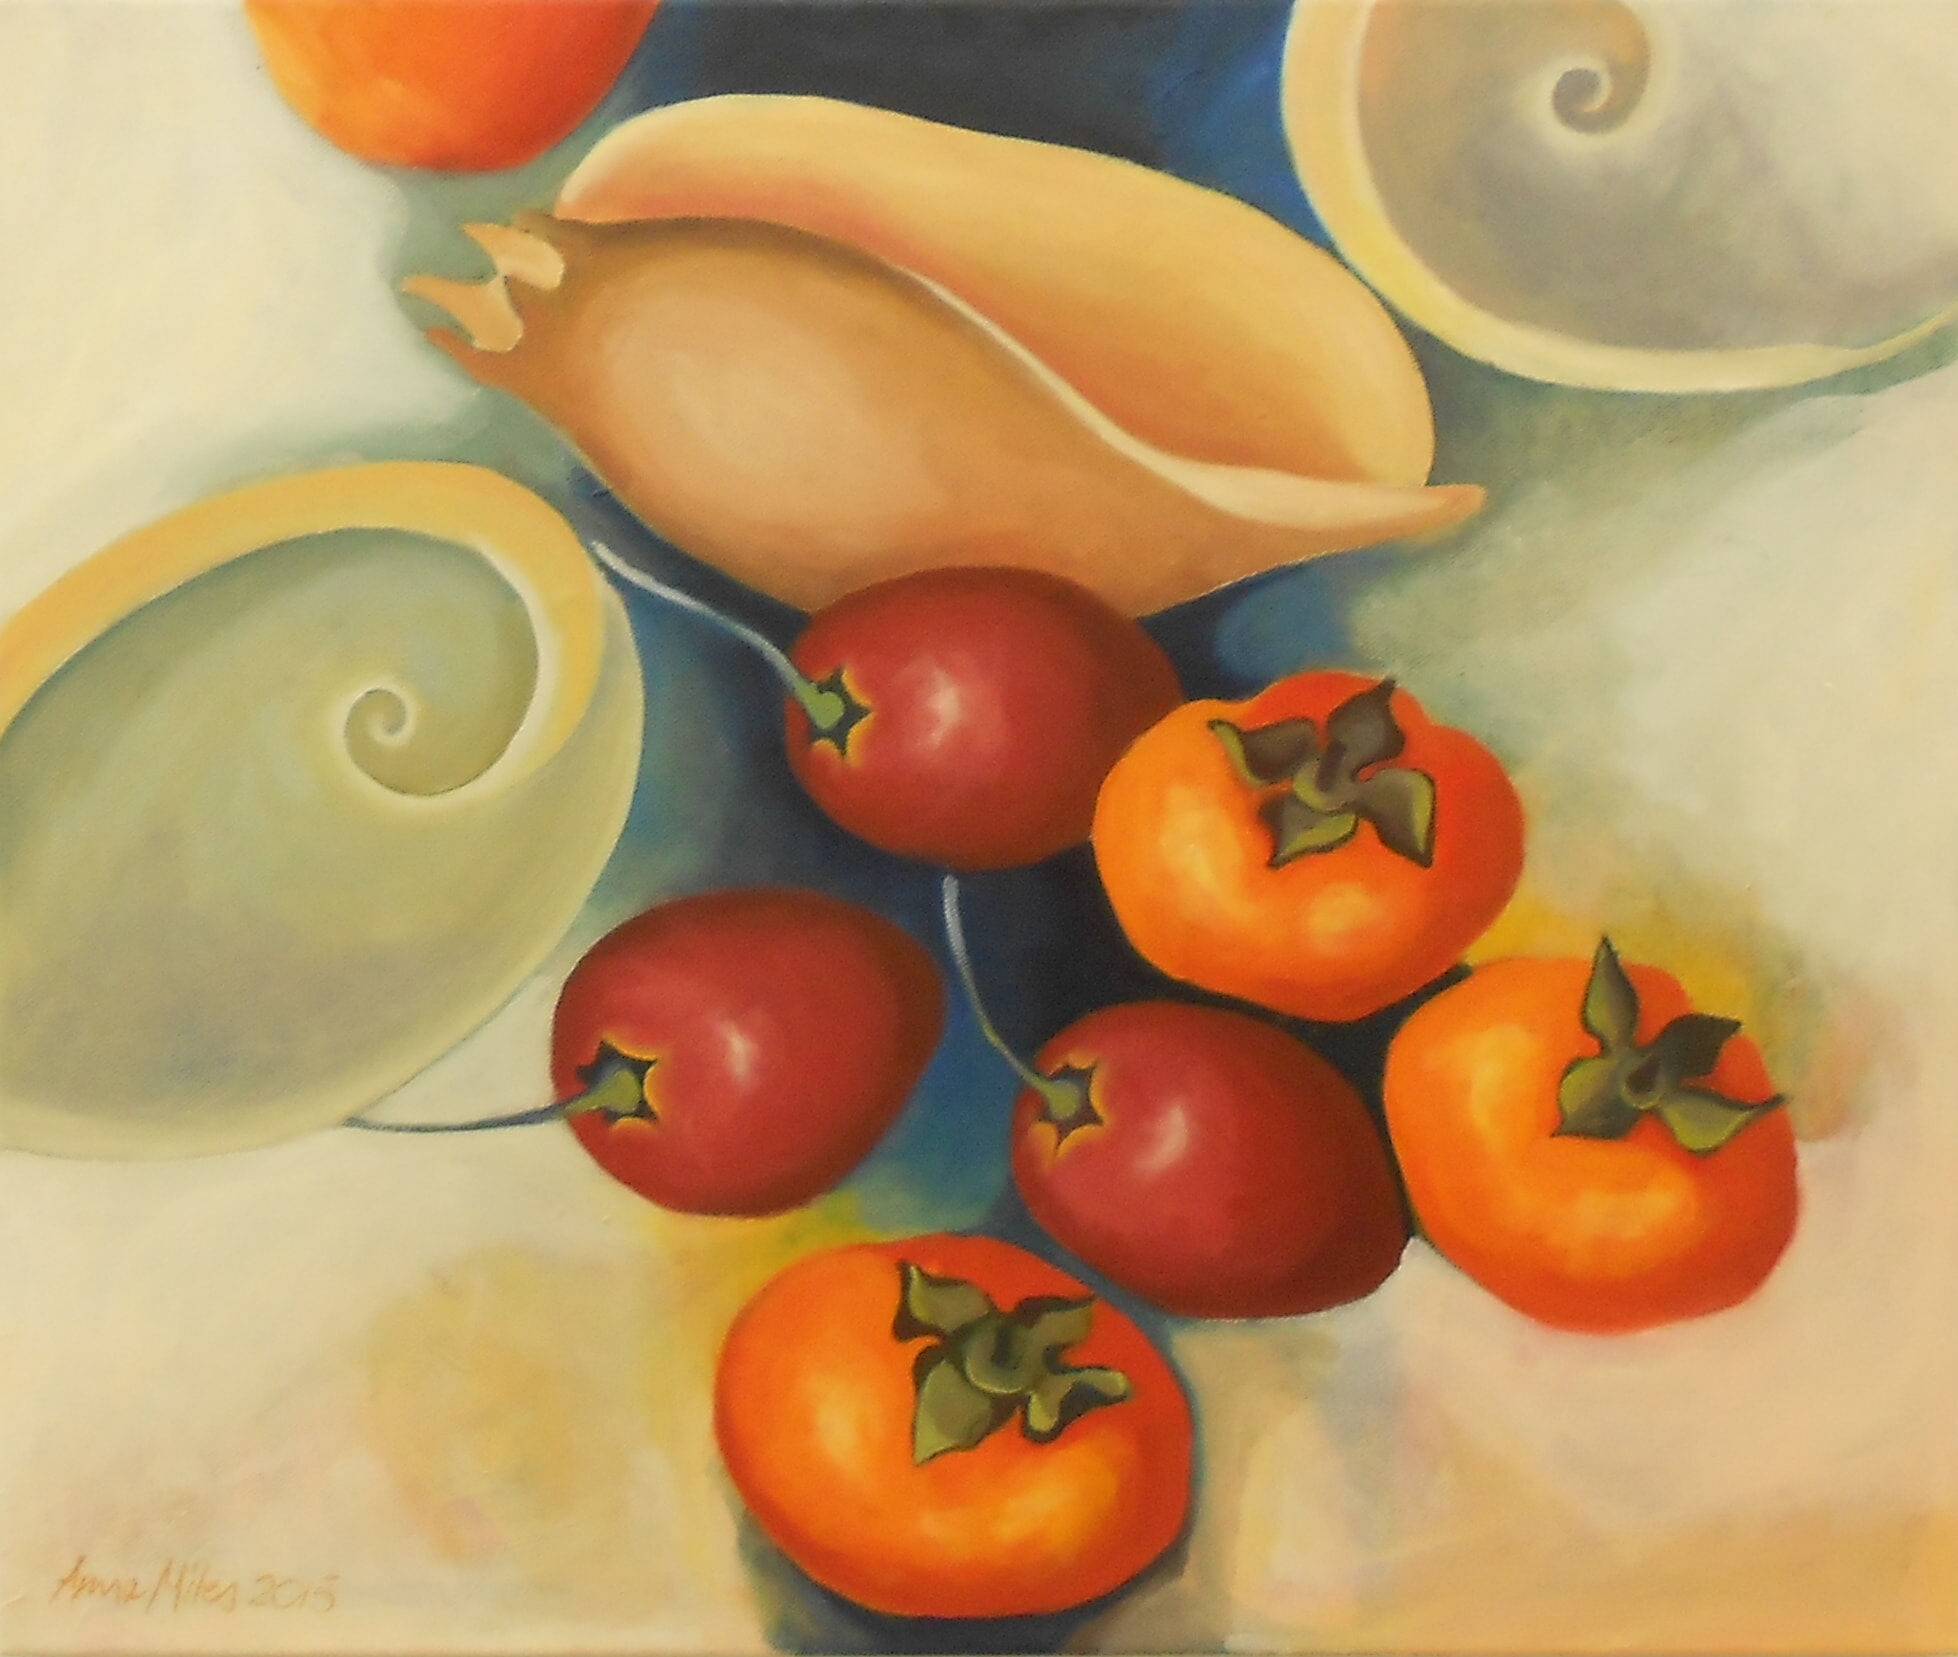 Persimmons and Tamarillos - Oil on canvas - Anne Miles 2015